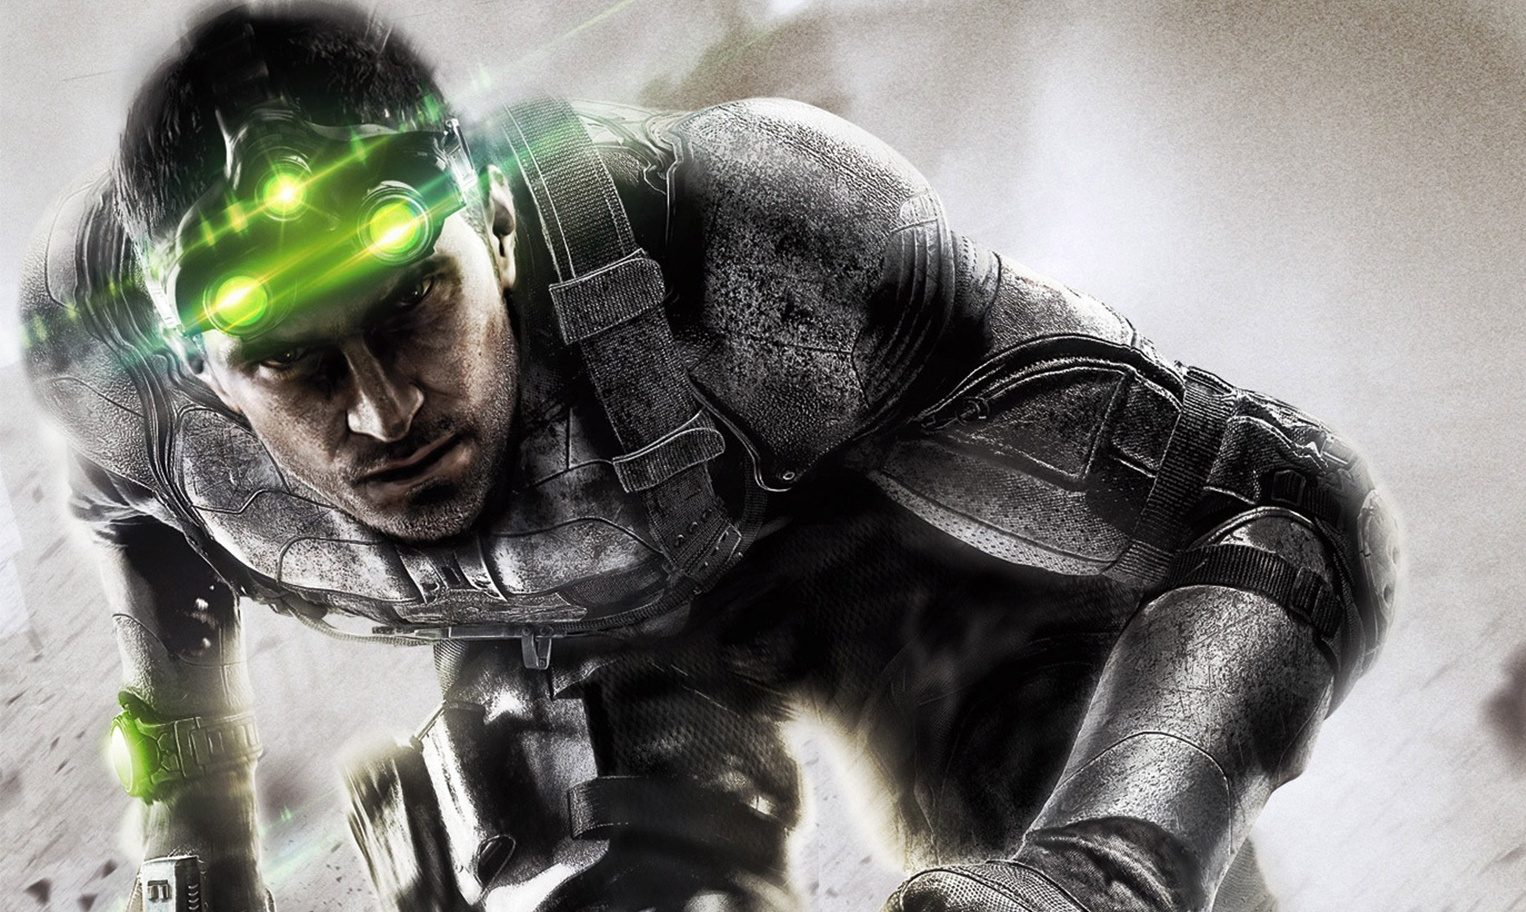 Steal characters Splinter Cell